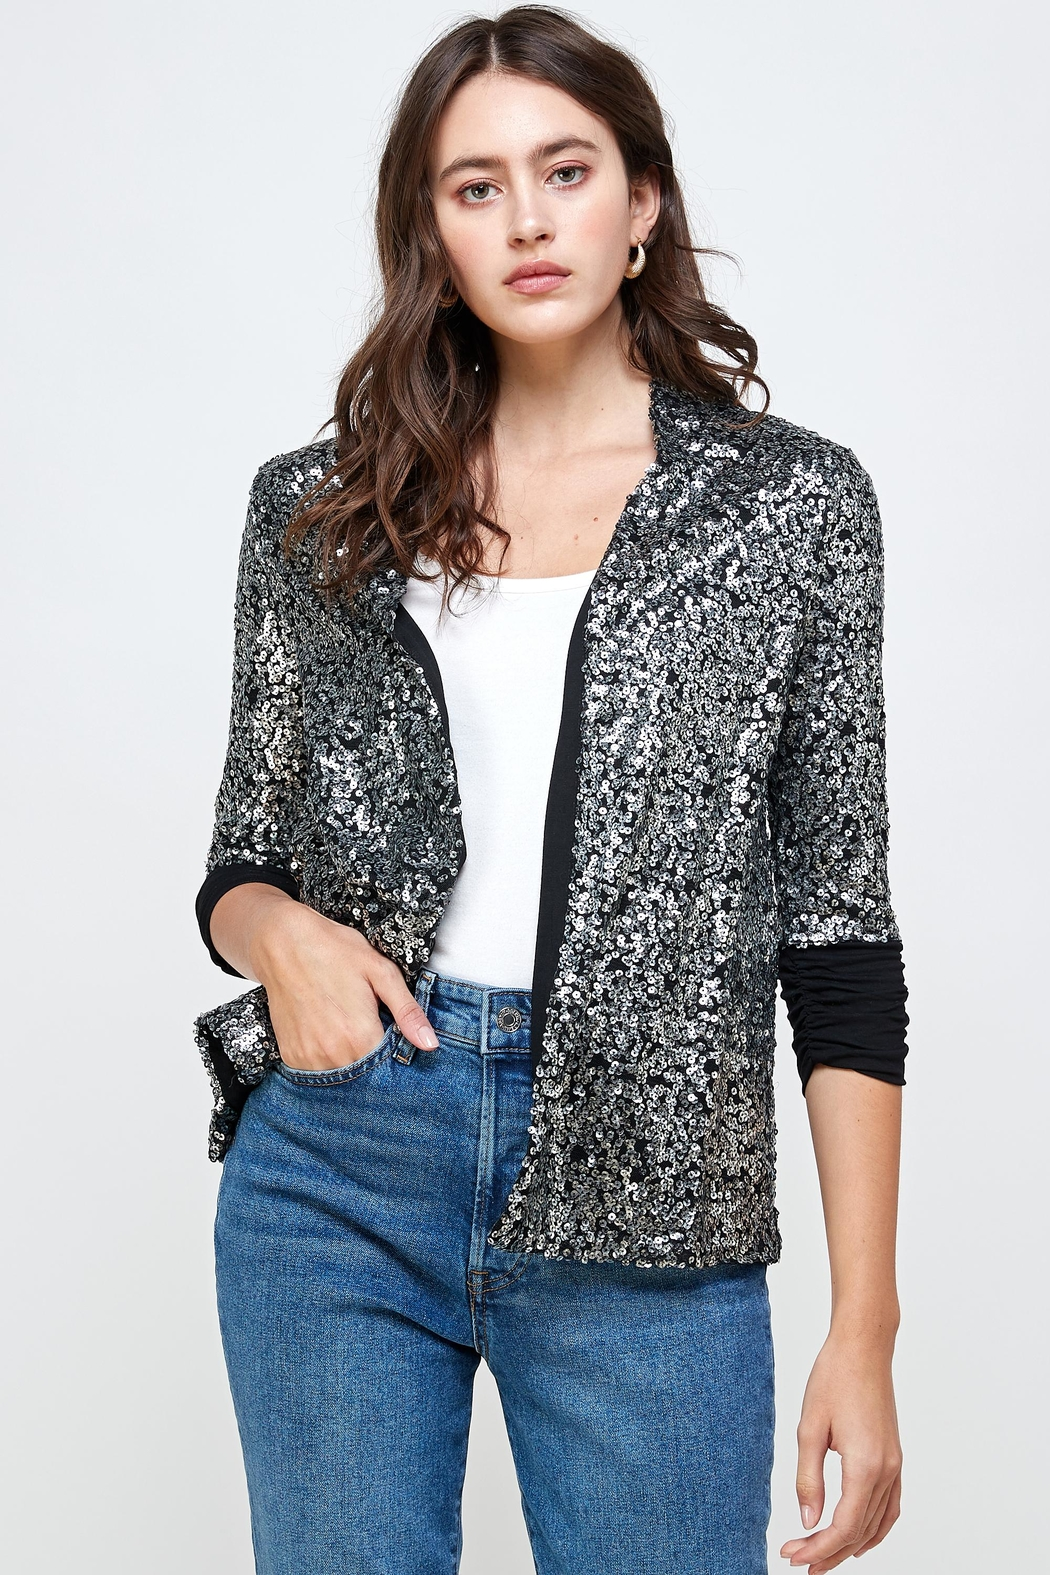 Kaii Sequins Cover Up Party Blazer Top - Main Image